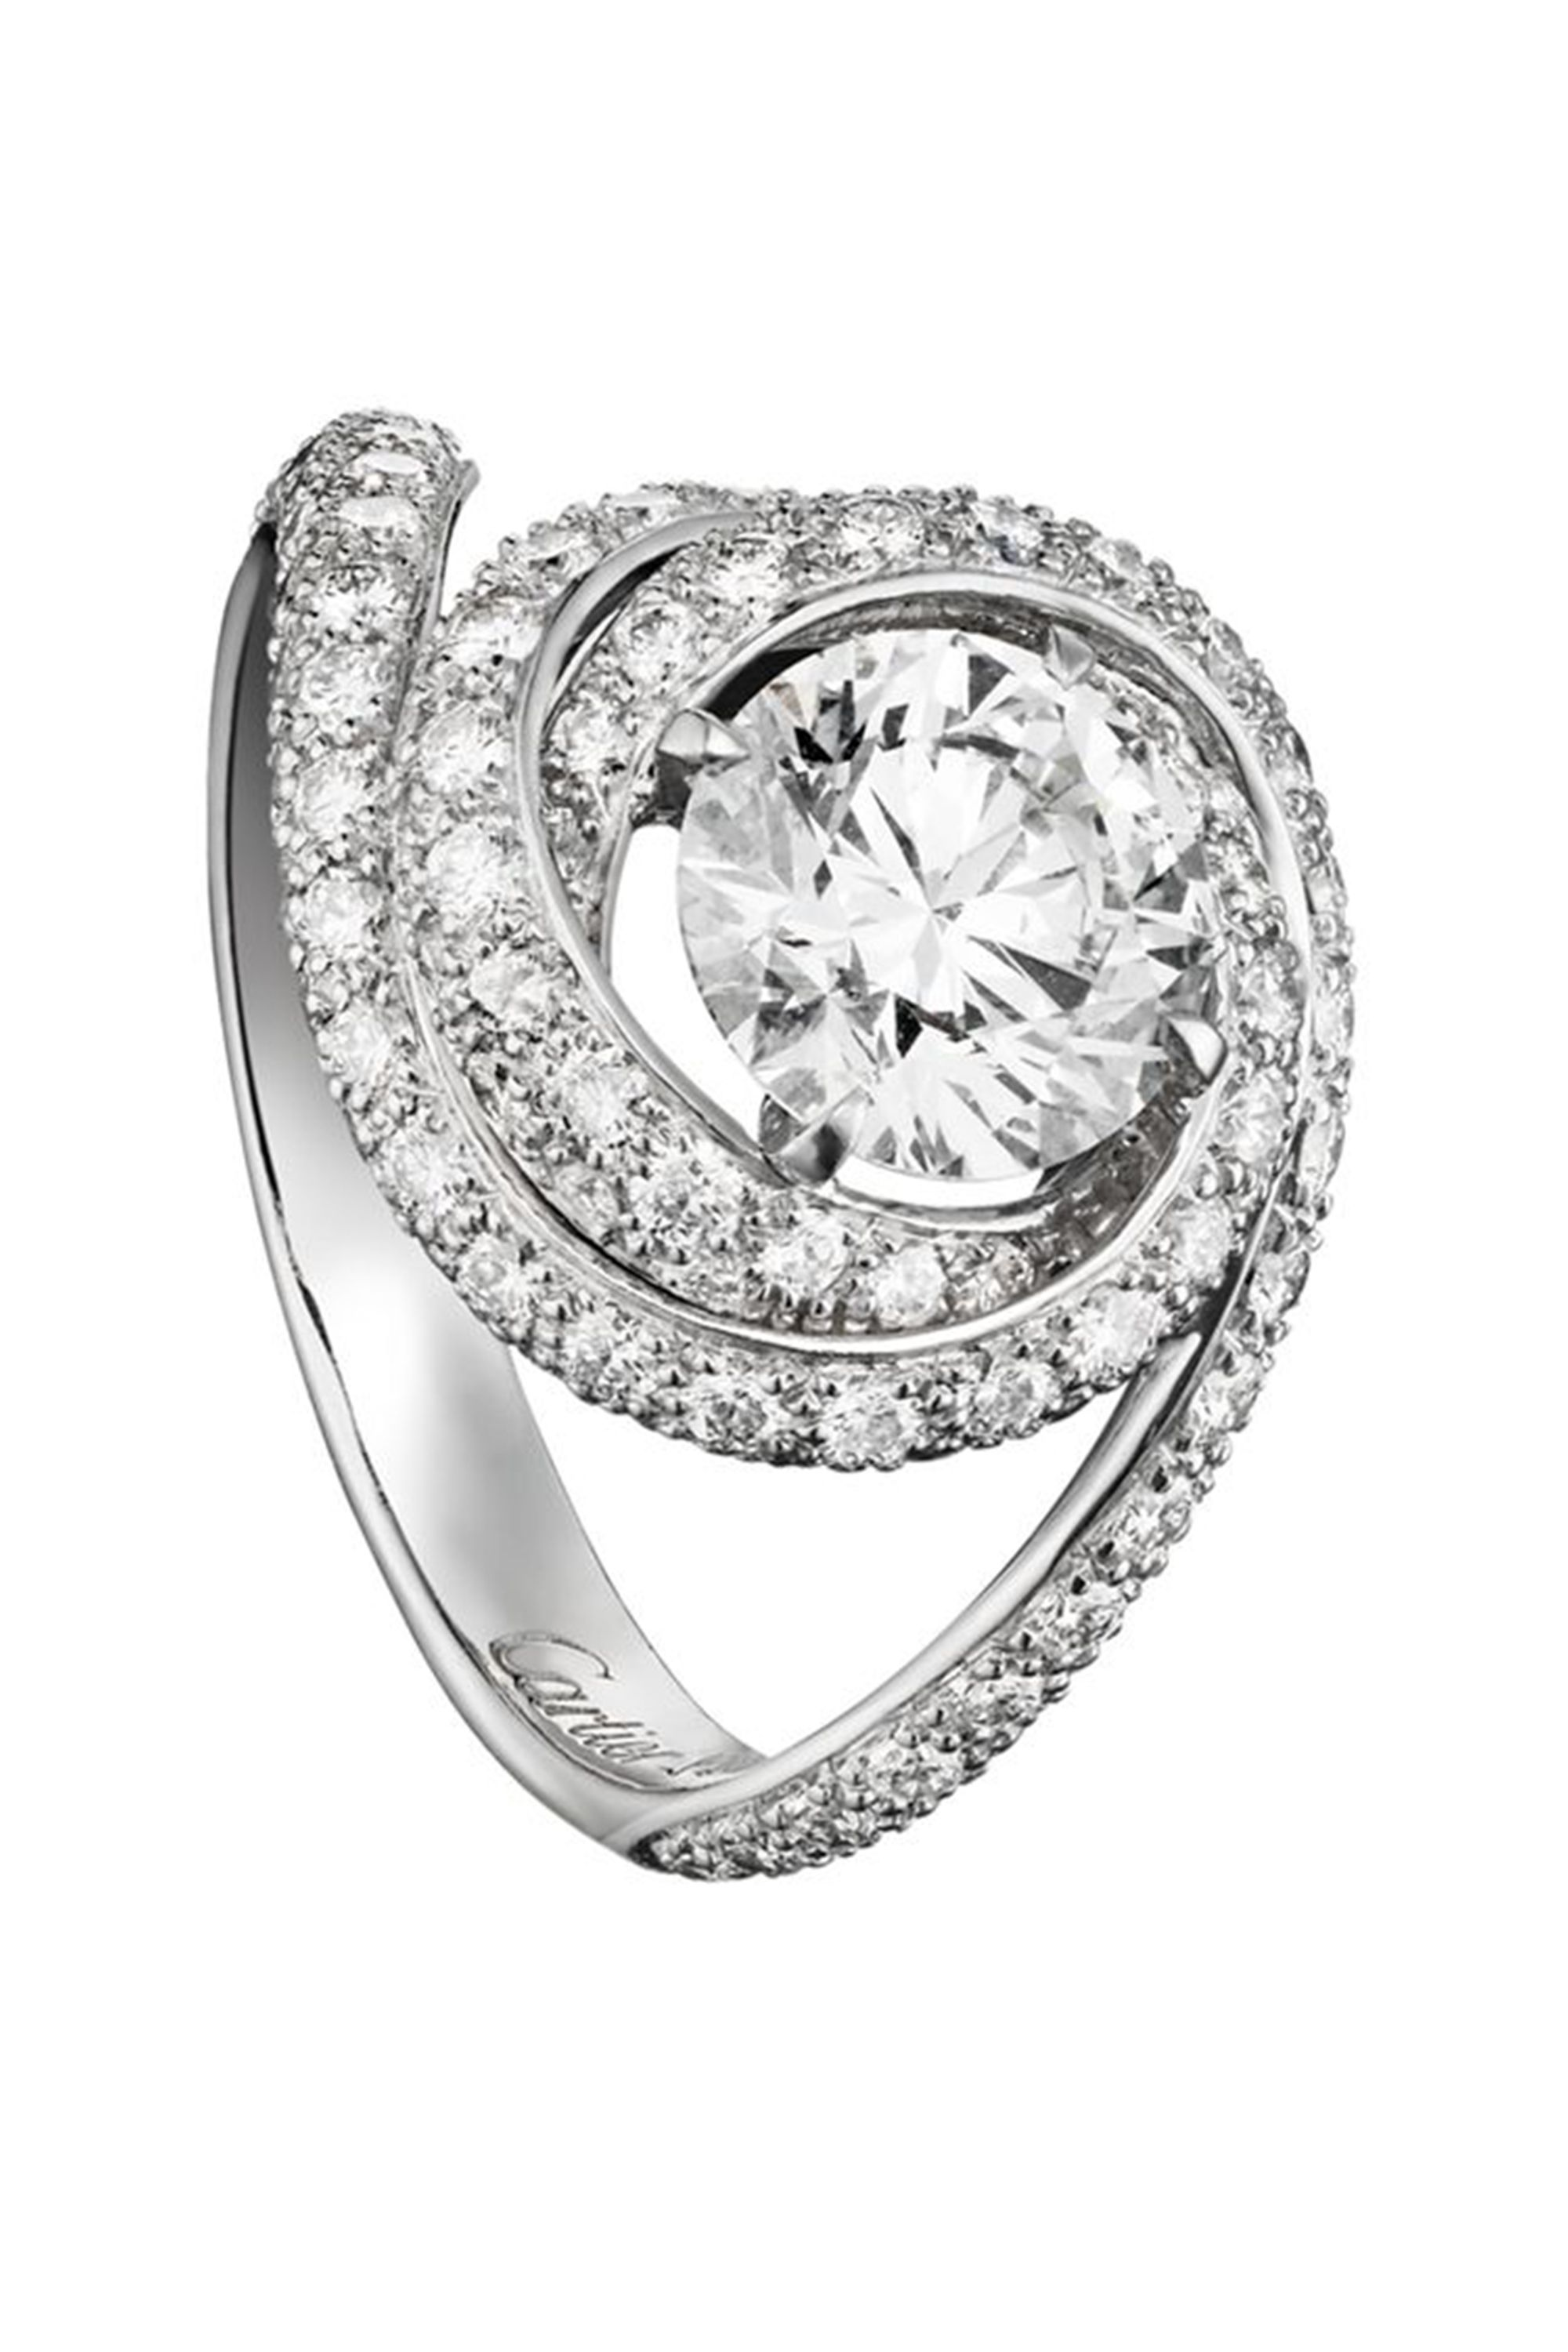 b1fa5d14b62ff Our guide to the best engagement rings - designer and classic ...